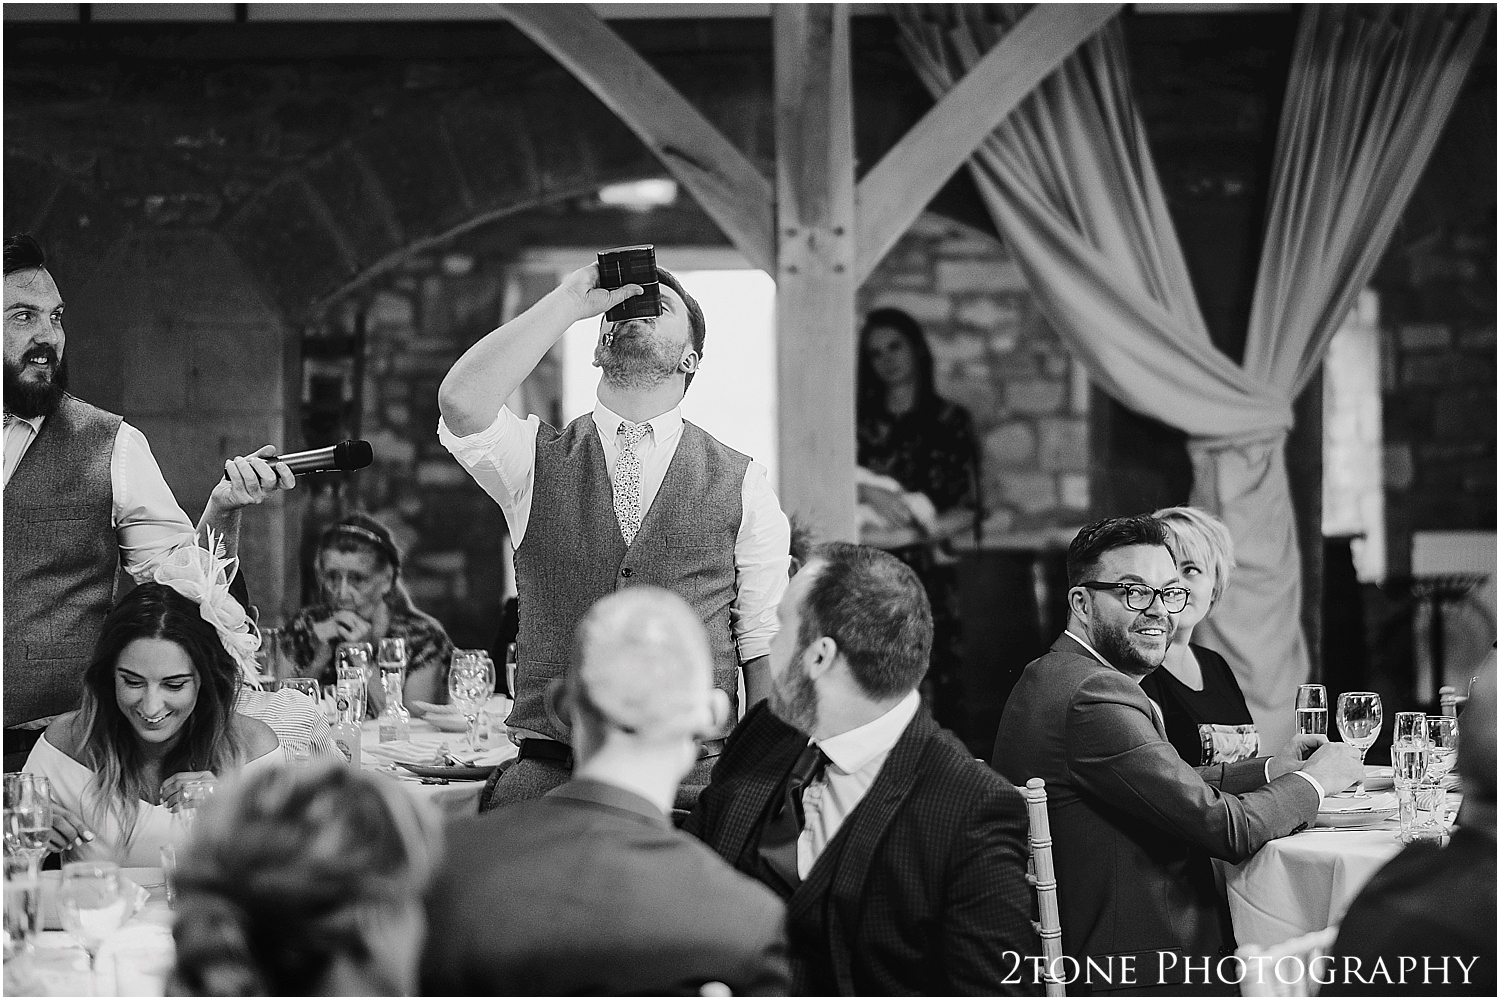 Doxford barns wedding photographer 067.jpg